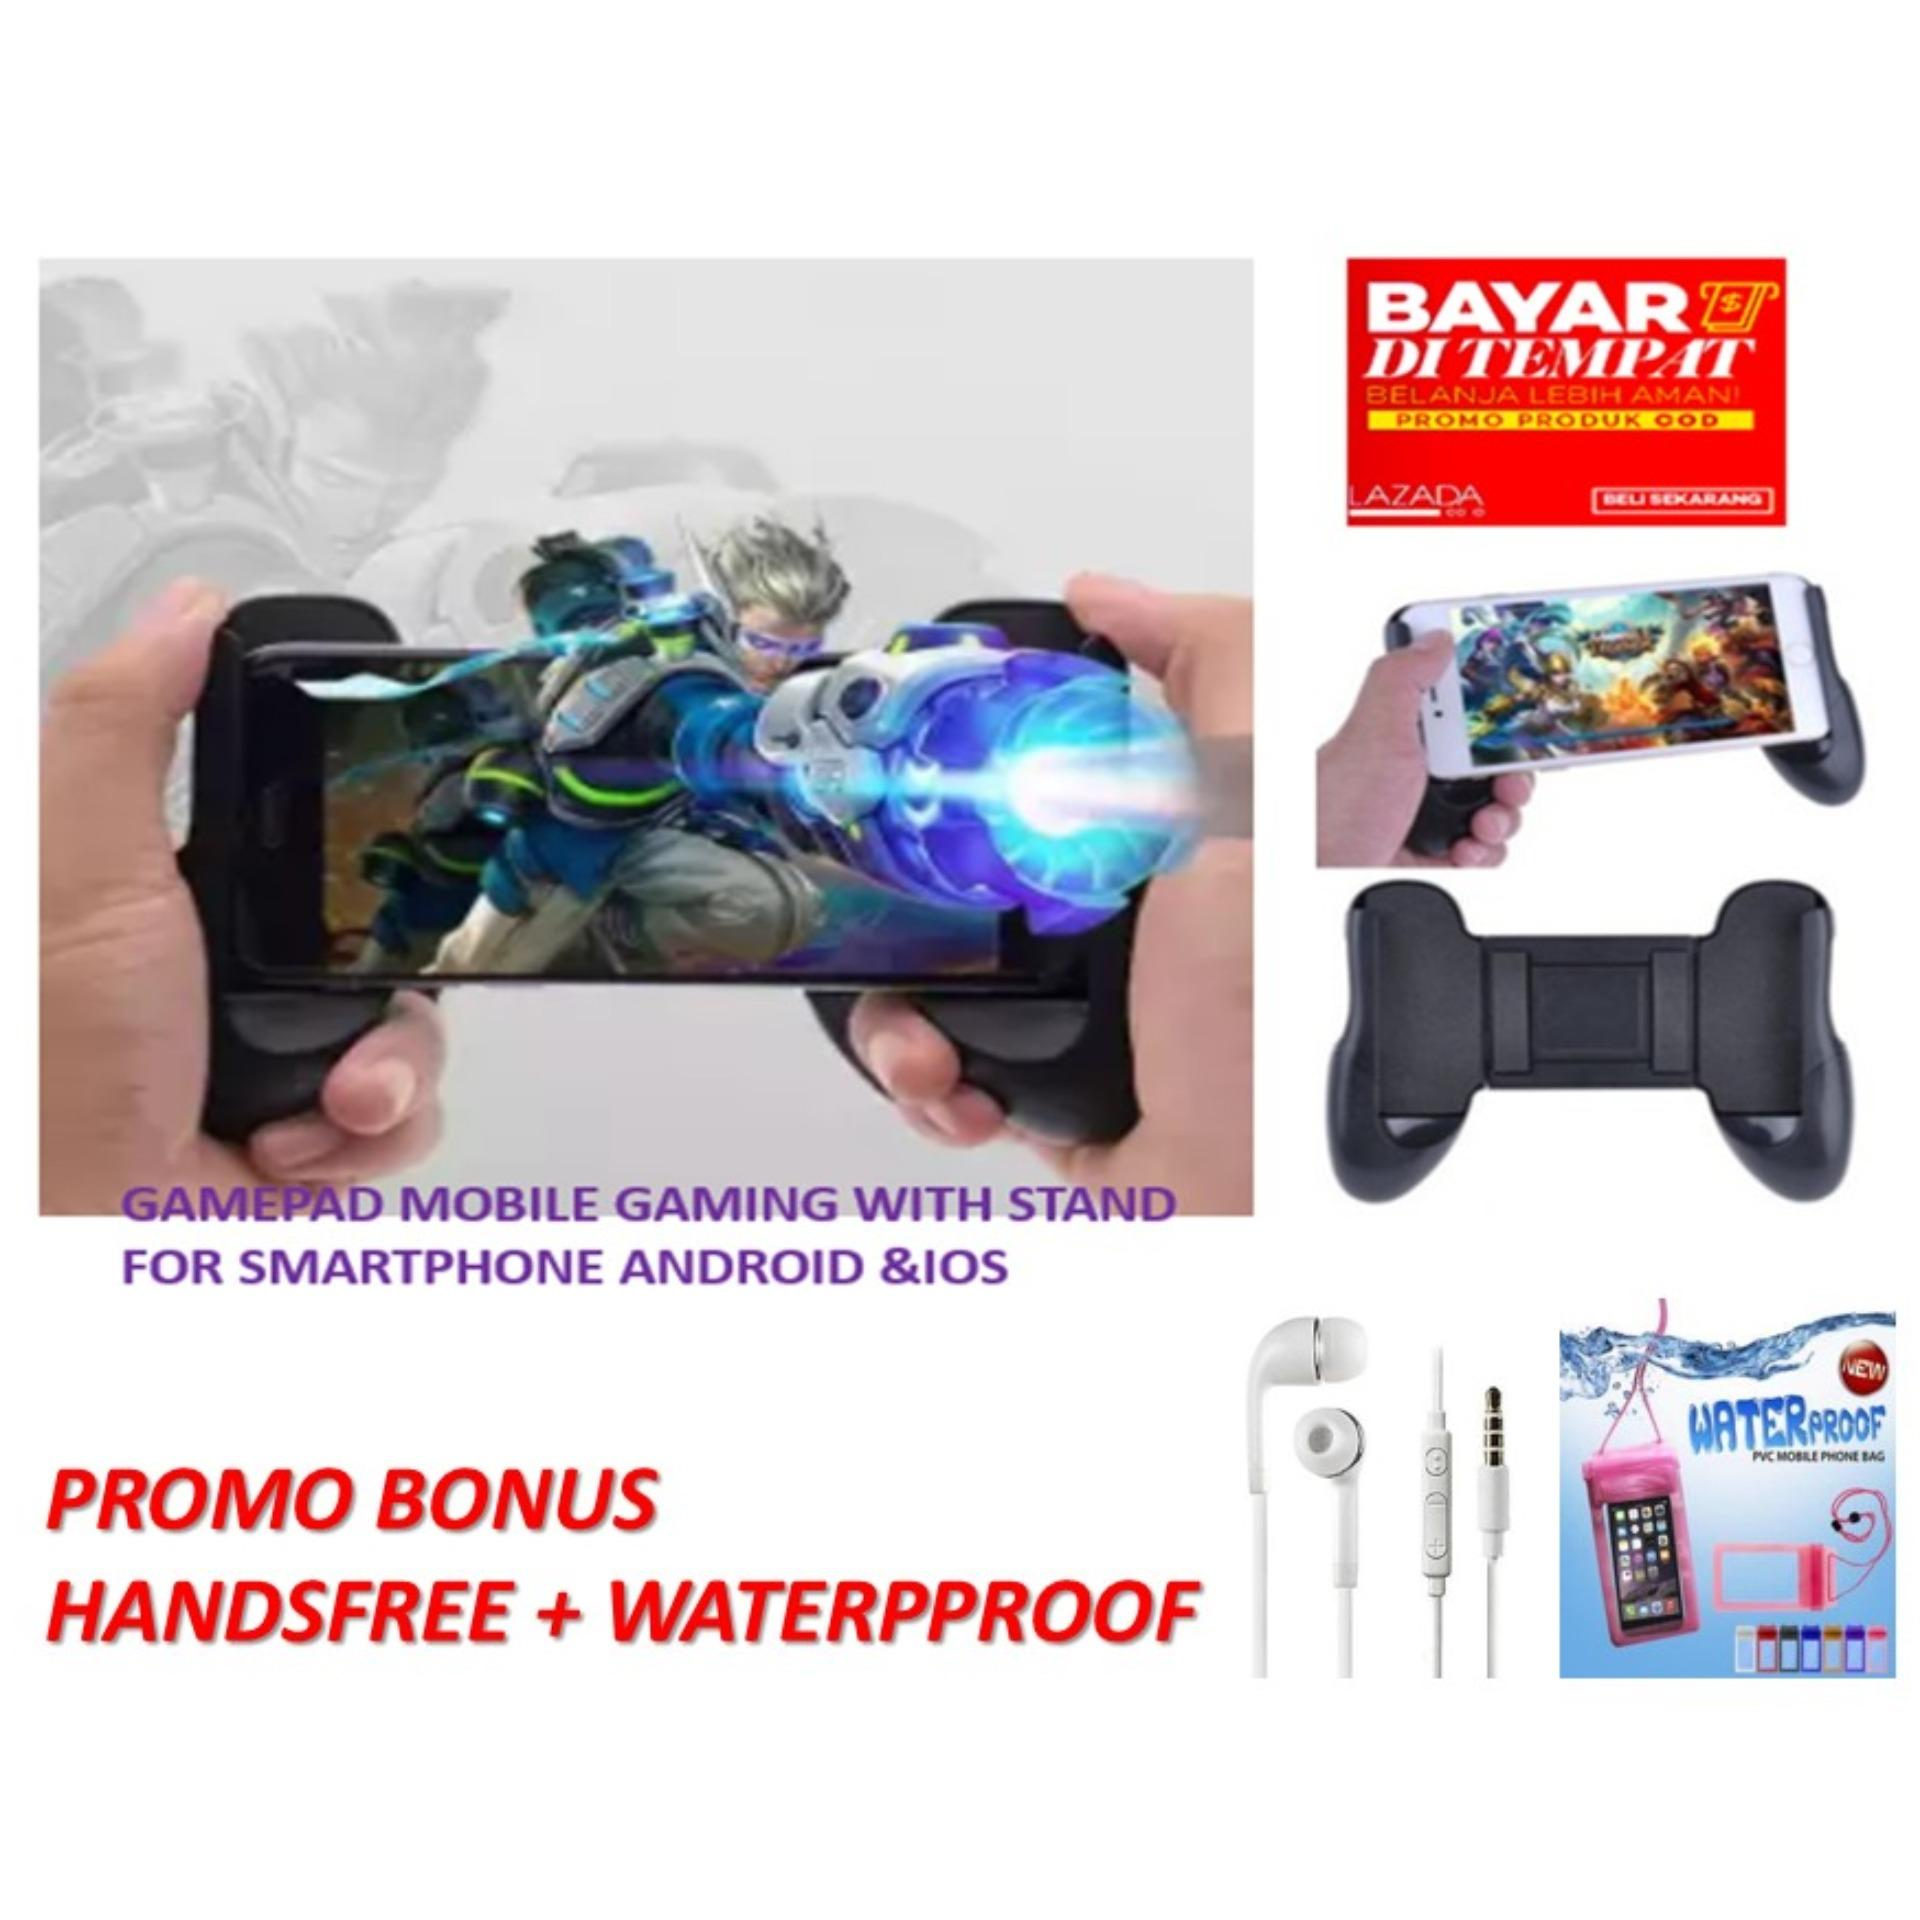 gamepad – mobile holder bisa standing untuk gaming – bisa semua jenis hp android & ios universal for mobile legend/ aov / pubg/ ros/ gamepad mobile / gamepad untuk pegangan mobile game  universal bonus handsfree+waterproof case